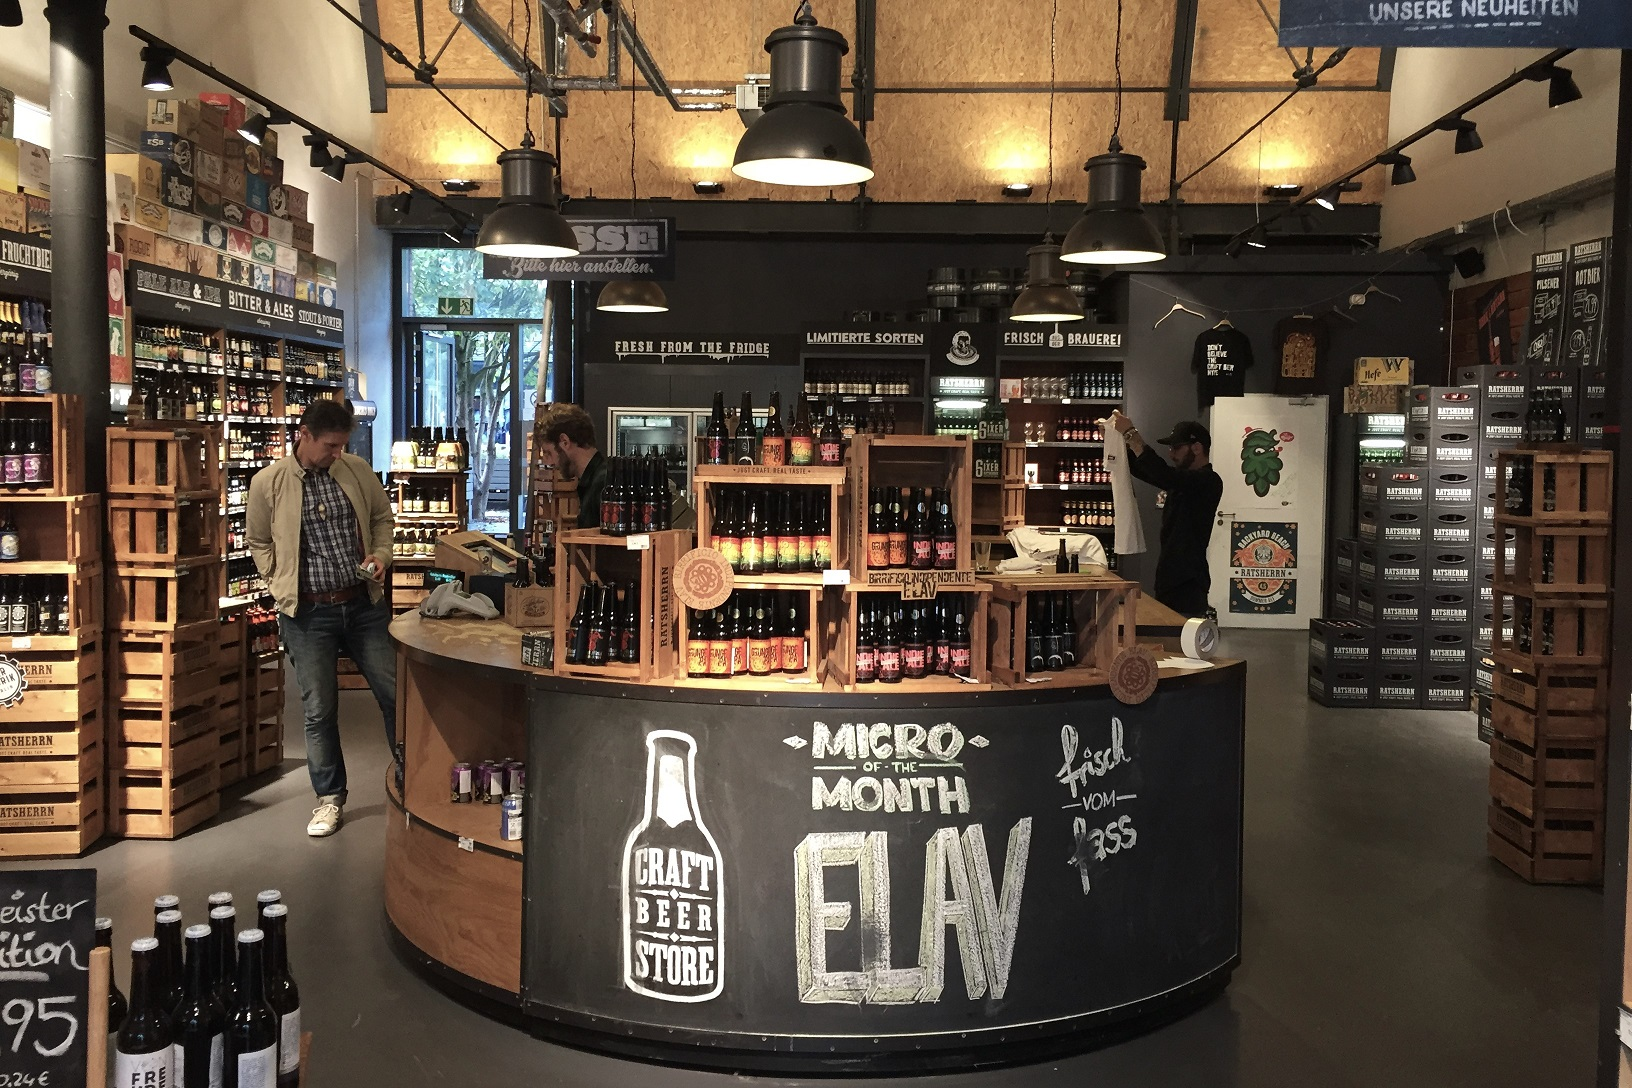 Die besten craft beer shops hamburg hopfenhelden for Design outlet hamburg